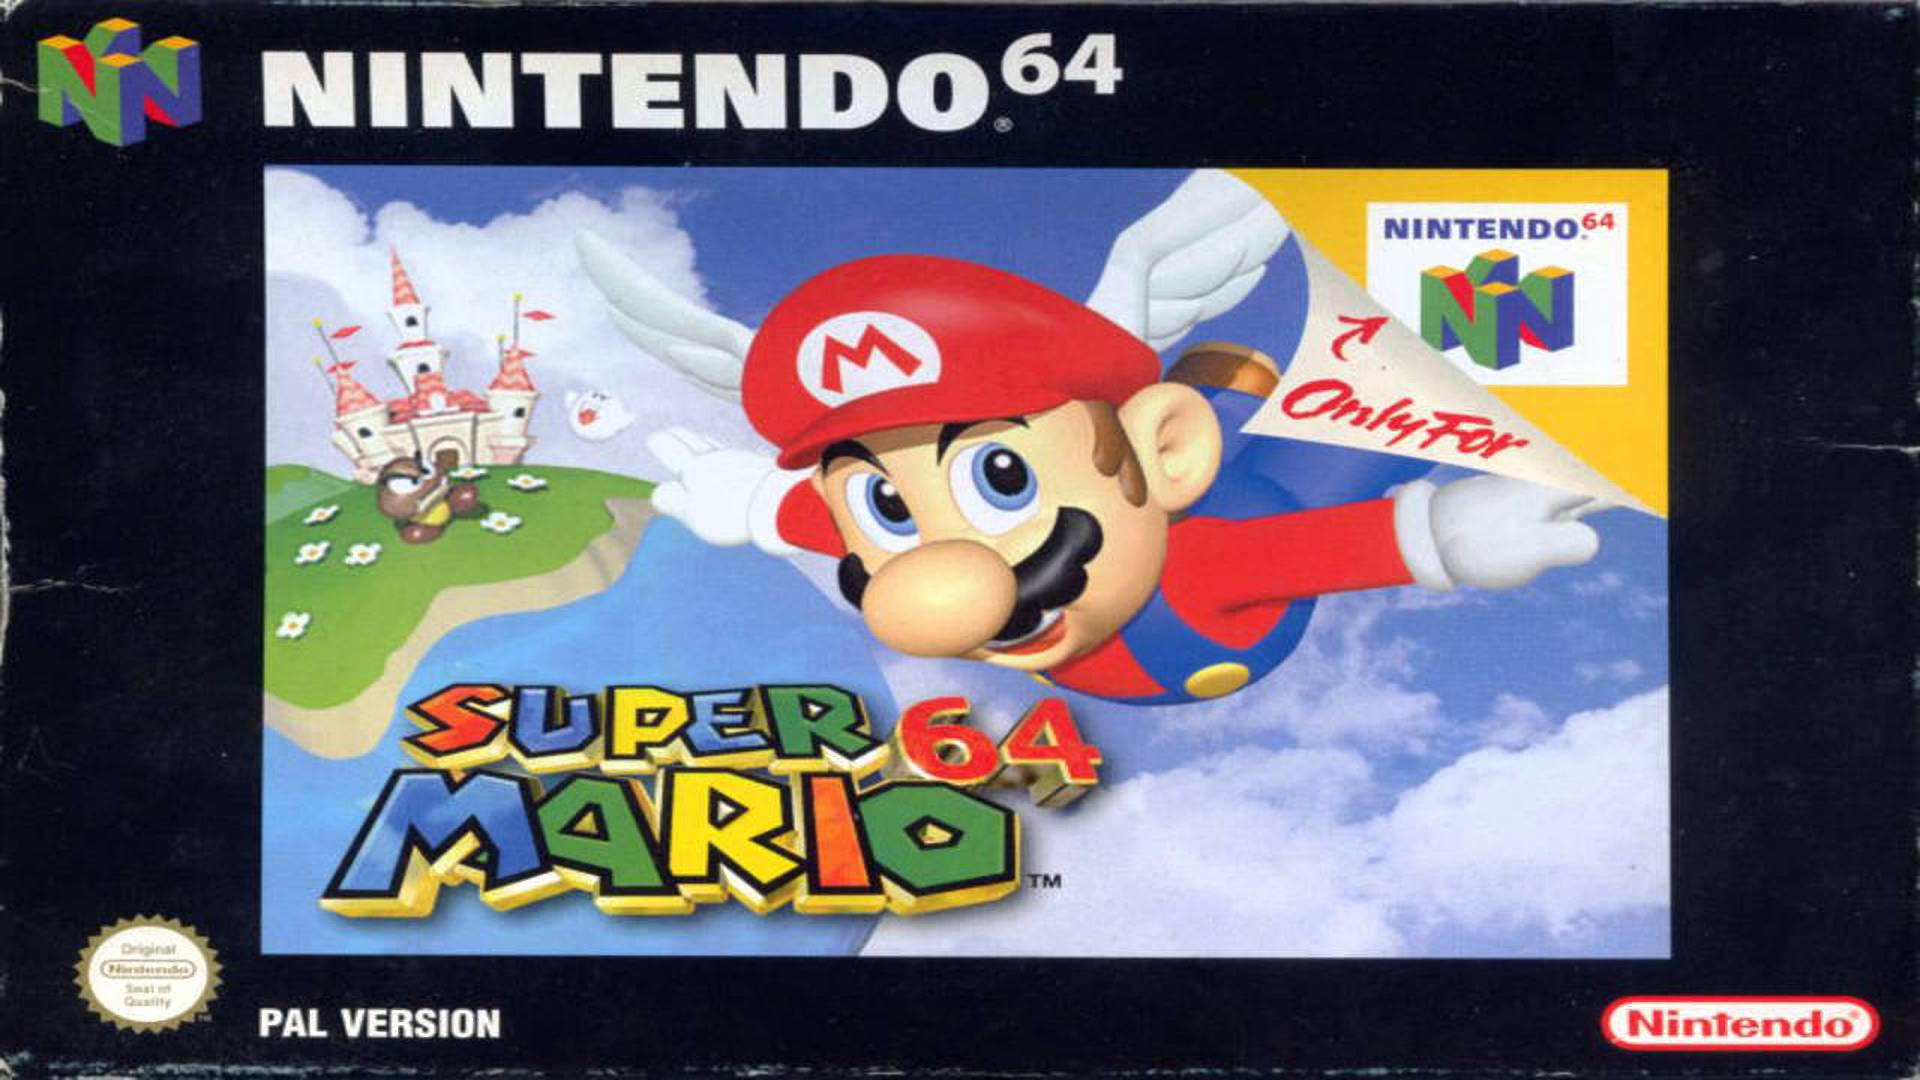 Super Mario 64 on the Nintendo 64.